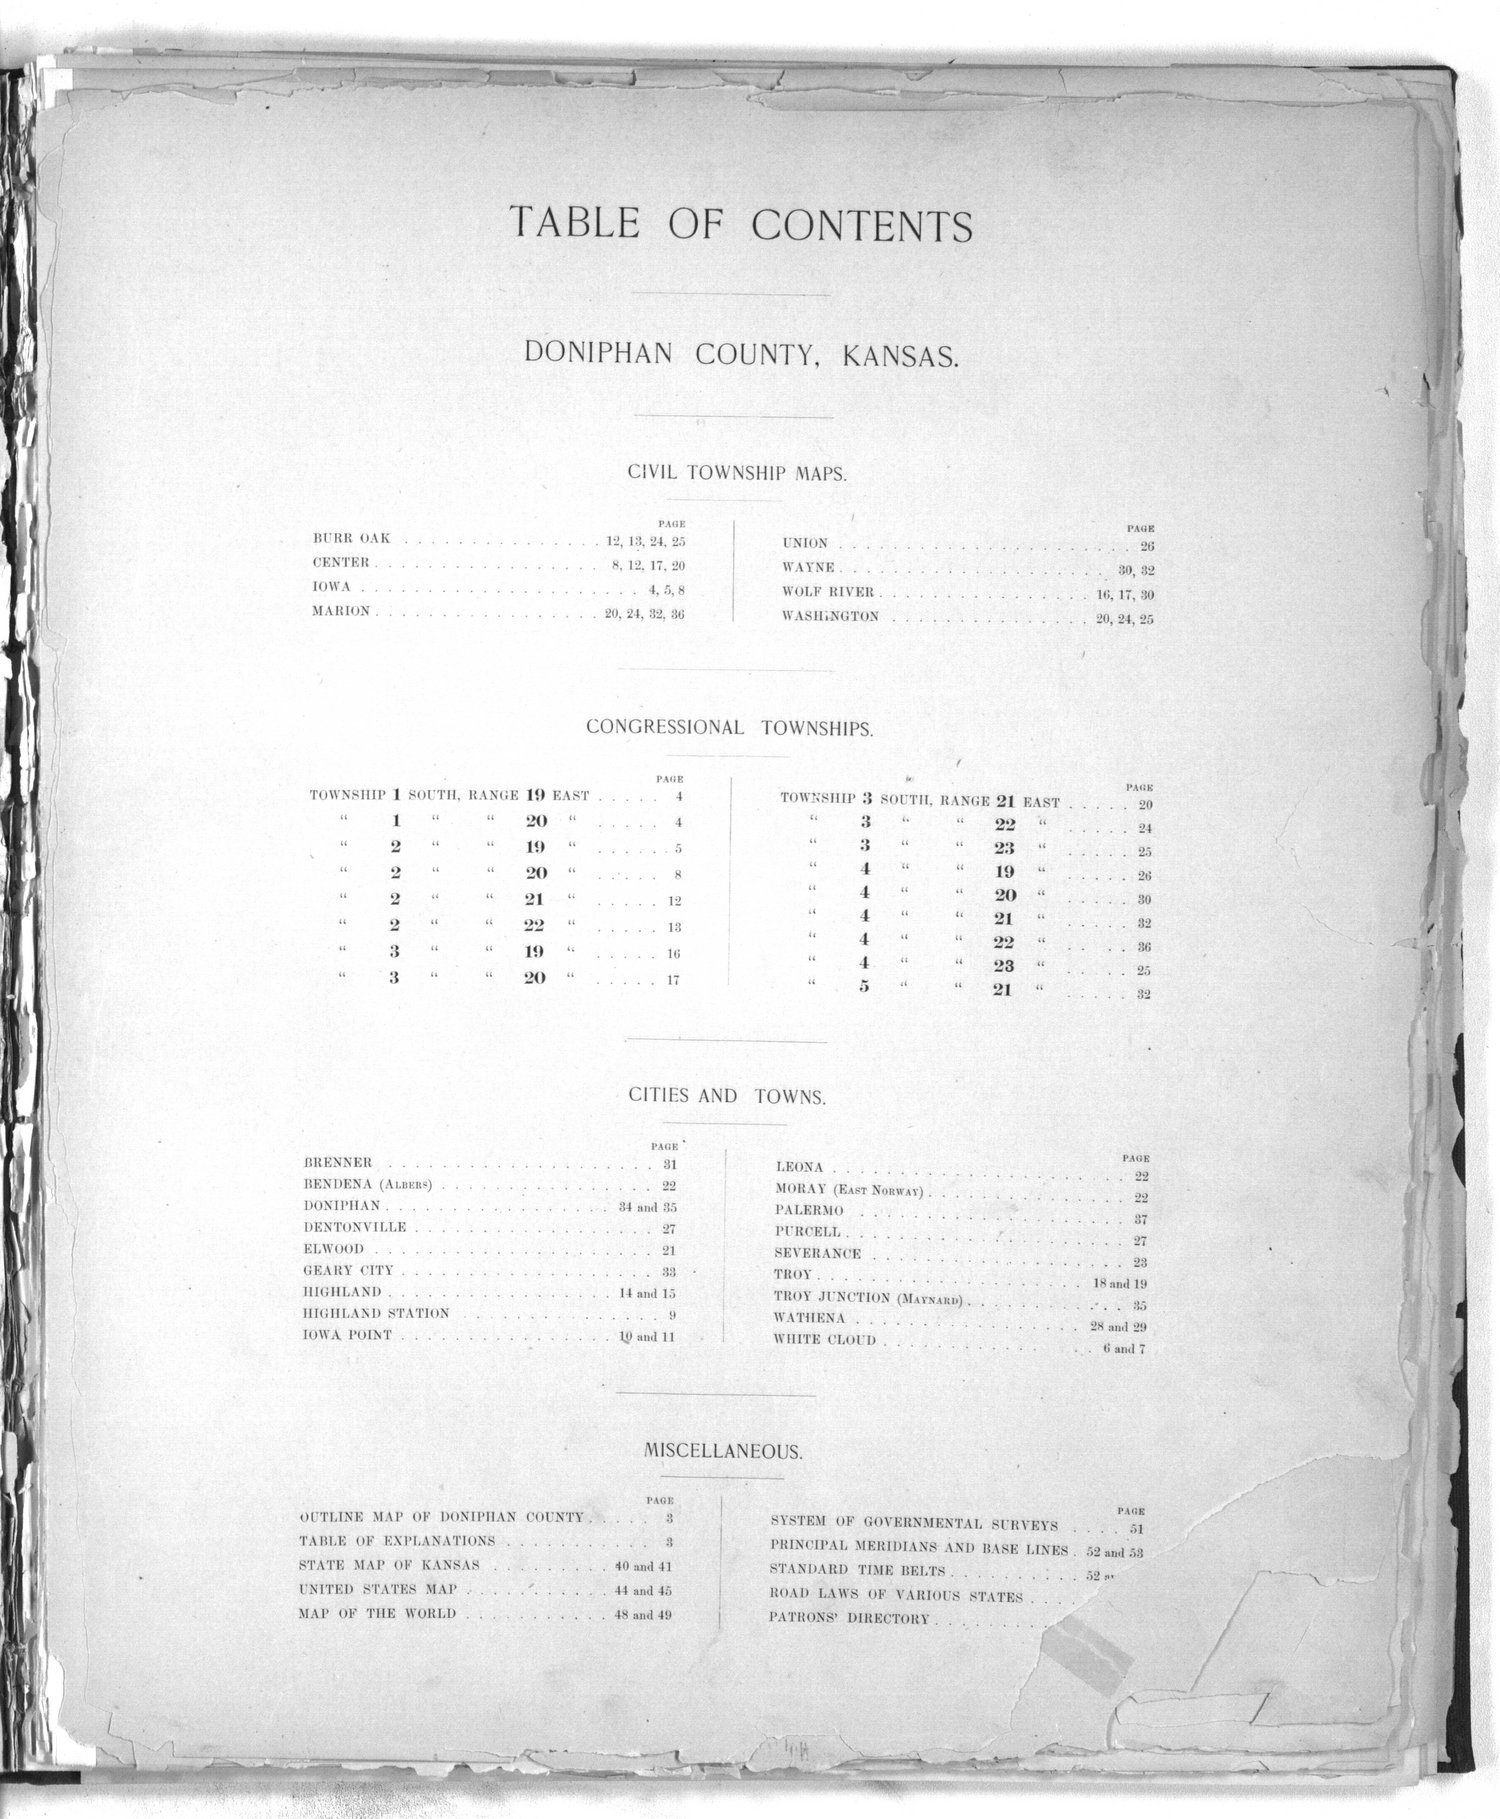 Plat book of Doniphan County, Kansas - Table of Contents